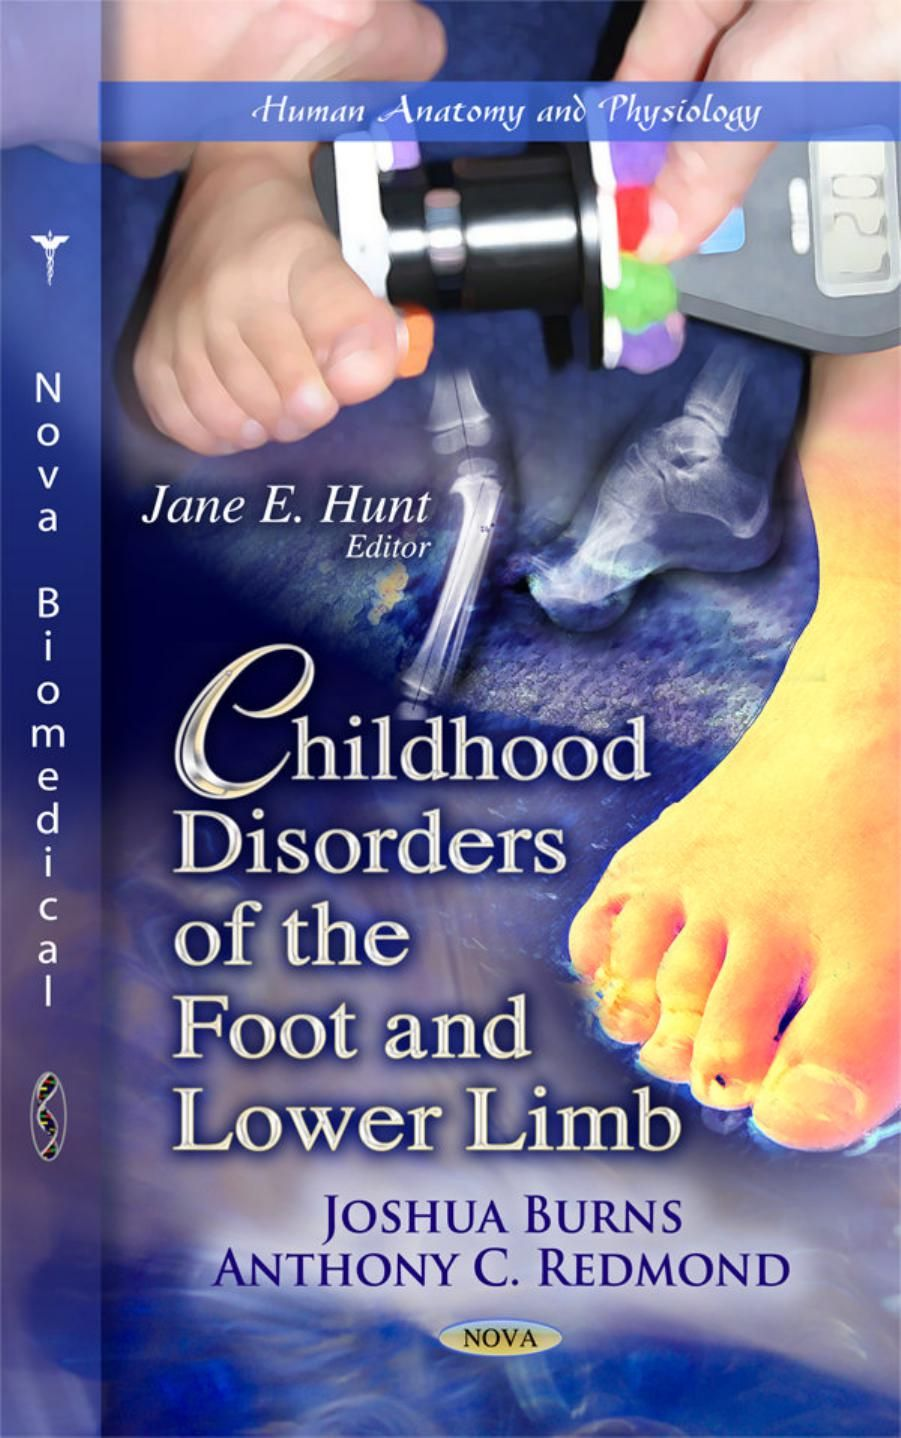 Childhood Disorders Of The Foot And Lower Limb Ebook Pdf Free Download  Edited By Joshua Burns And Anthony C Redmond Publisher: Nova Science Pu